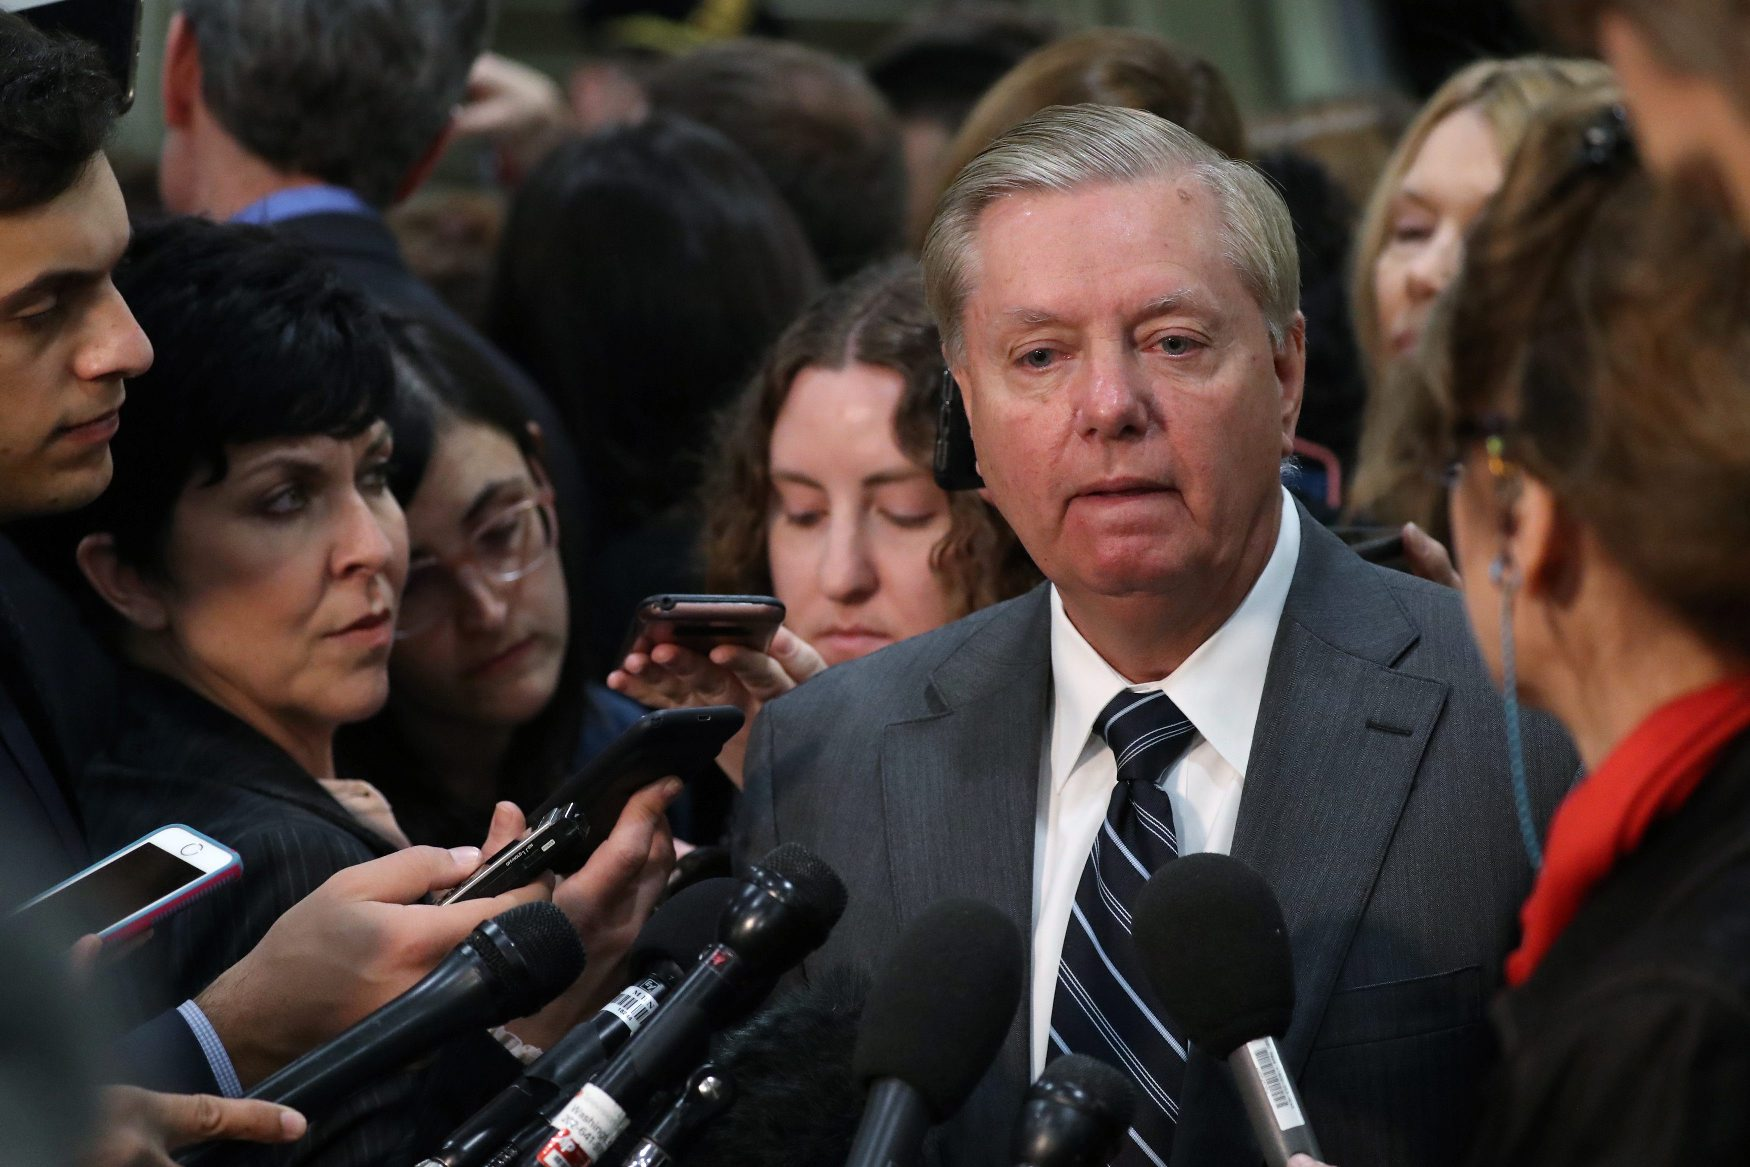 U.S. Senator Lindsey Graham (R-SC) speaks to reporters after attending a closed-door briefing, on the death of the journalist Jamal Khashoggi, by Central Intelligence Agency (CIA) Director Gina Haspel at the U.S. Capitol in Washington, U.S., December 4, 2018. REUTERS/Jonathan Ernst